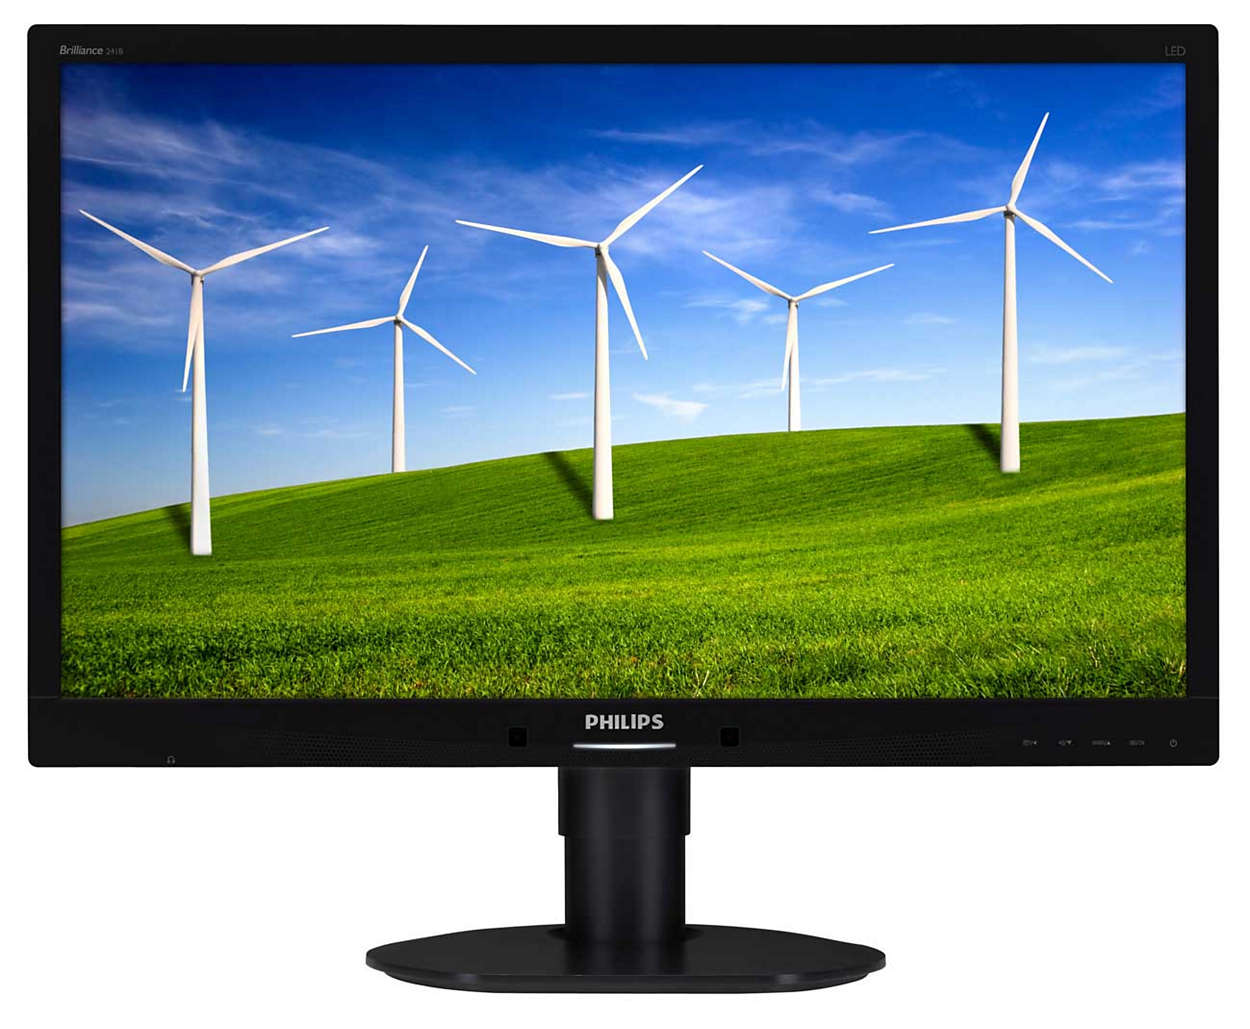 "Philips LCD 241B4LPYCB 24""wide/1920x1080/5ms/20mil:1/DP/USB/LED/PowerSensor/pivot/repro, černý"